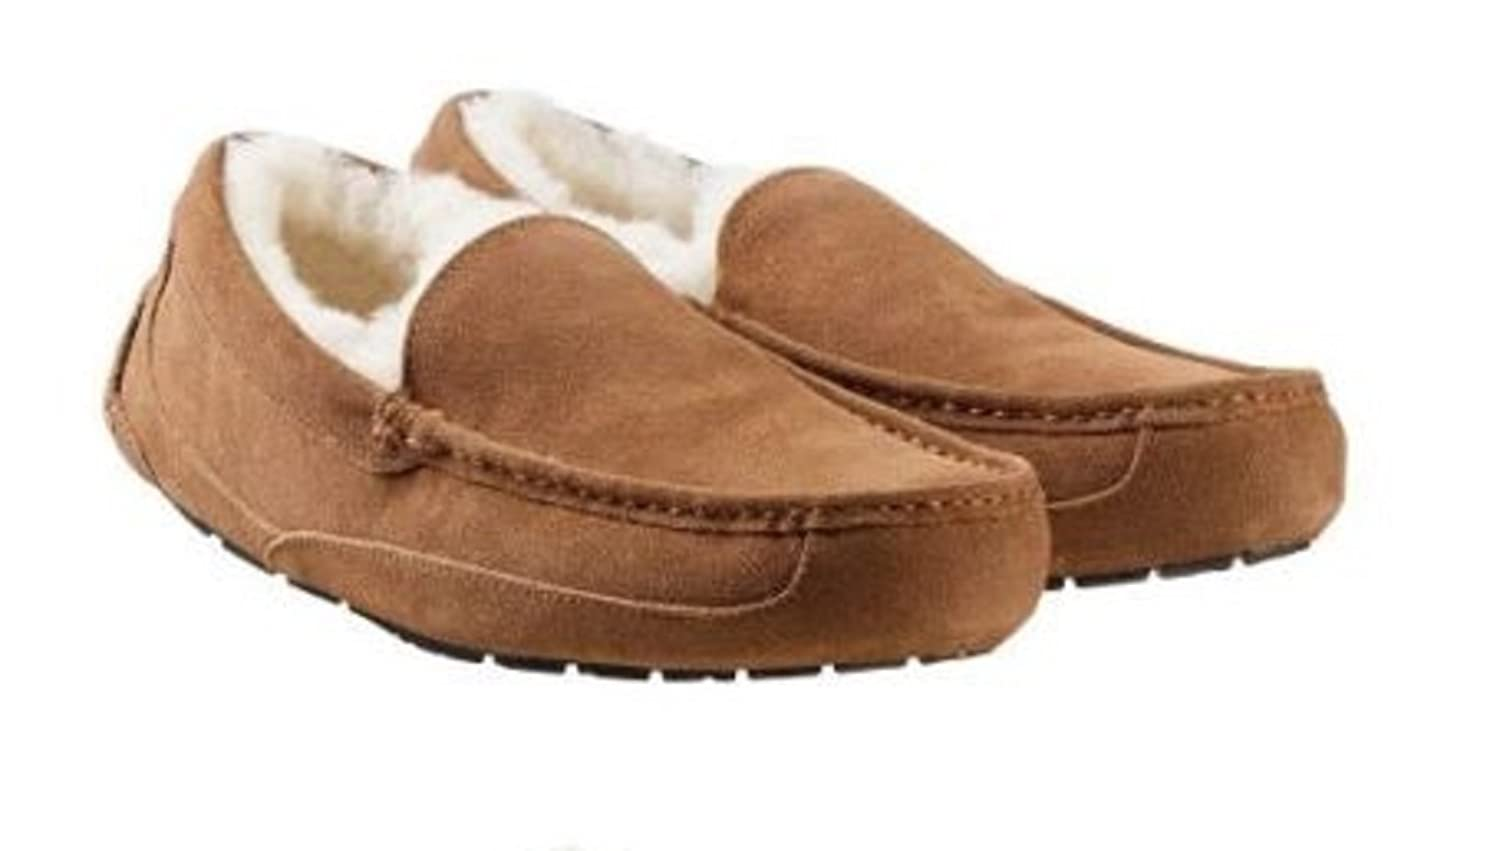 1b4cf682090 outlet Kirkland Signature mens Shearling moccasins Slippers ...